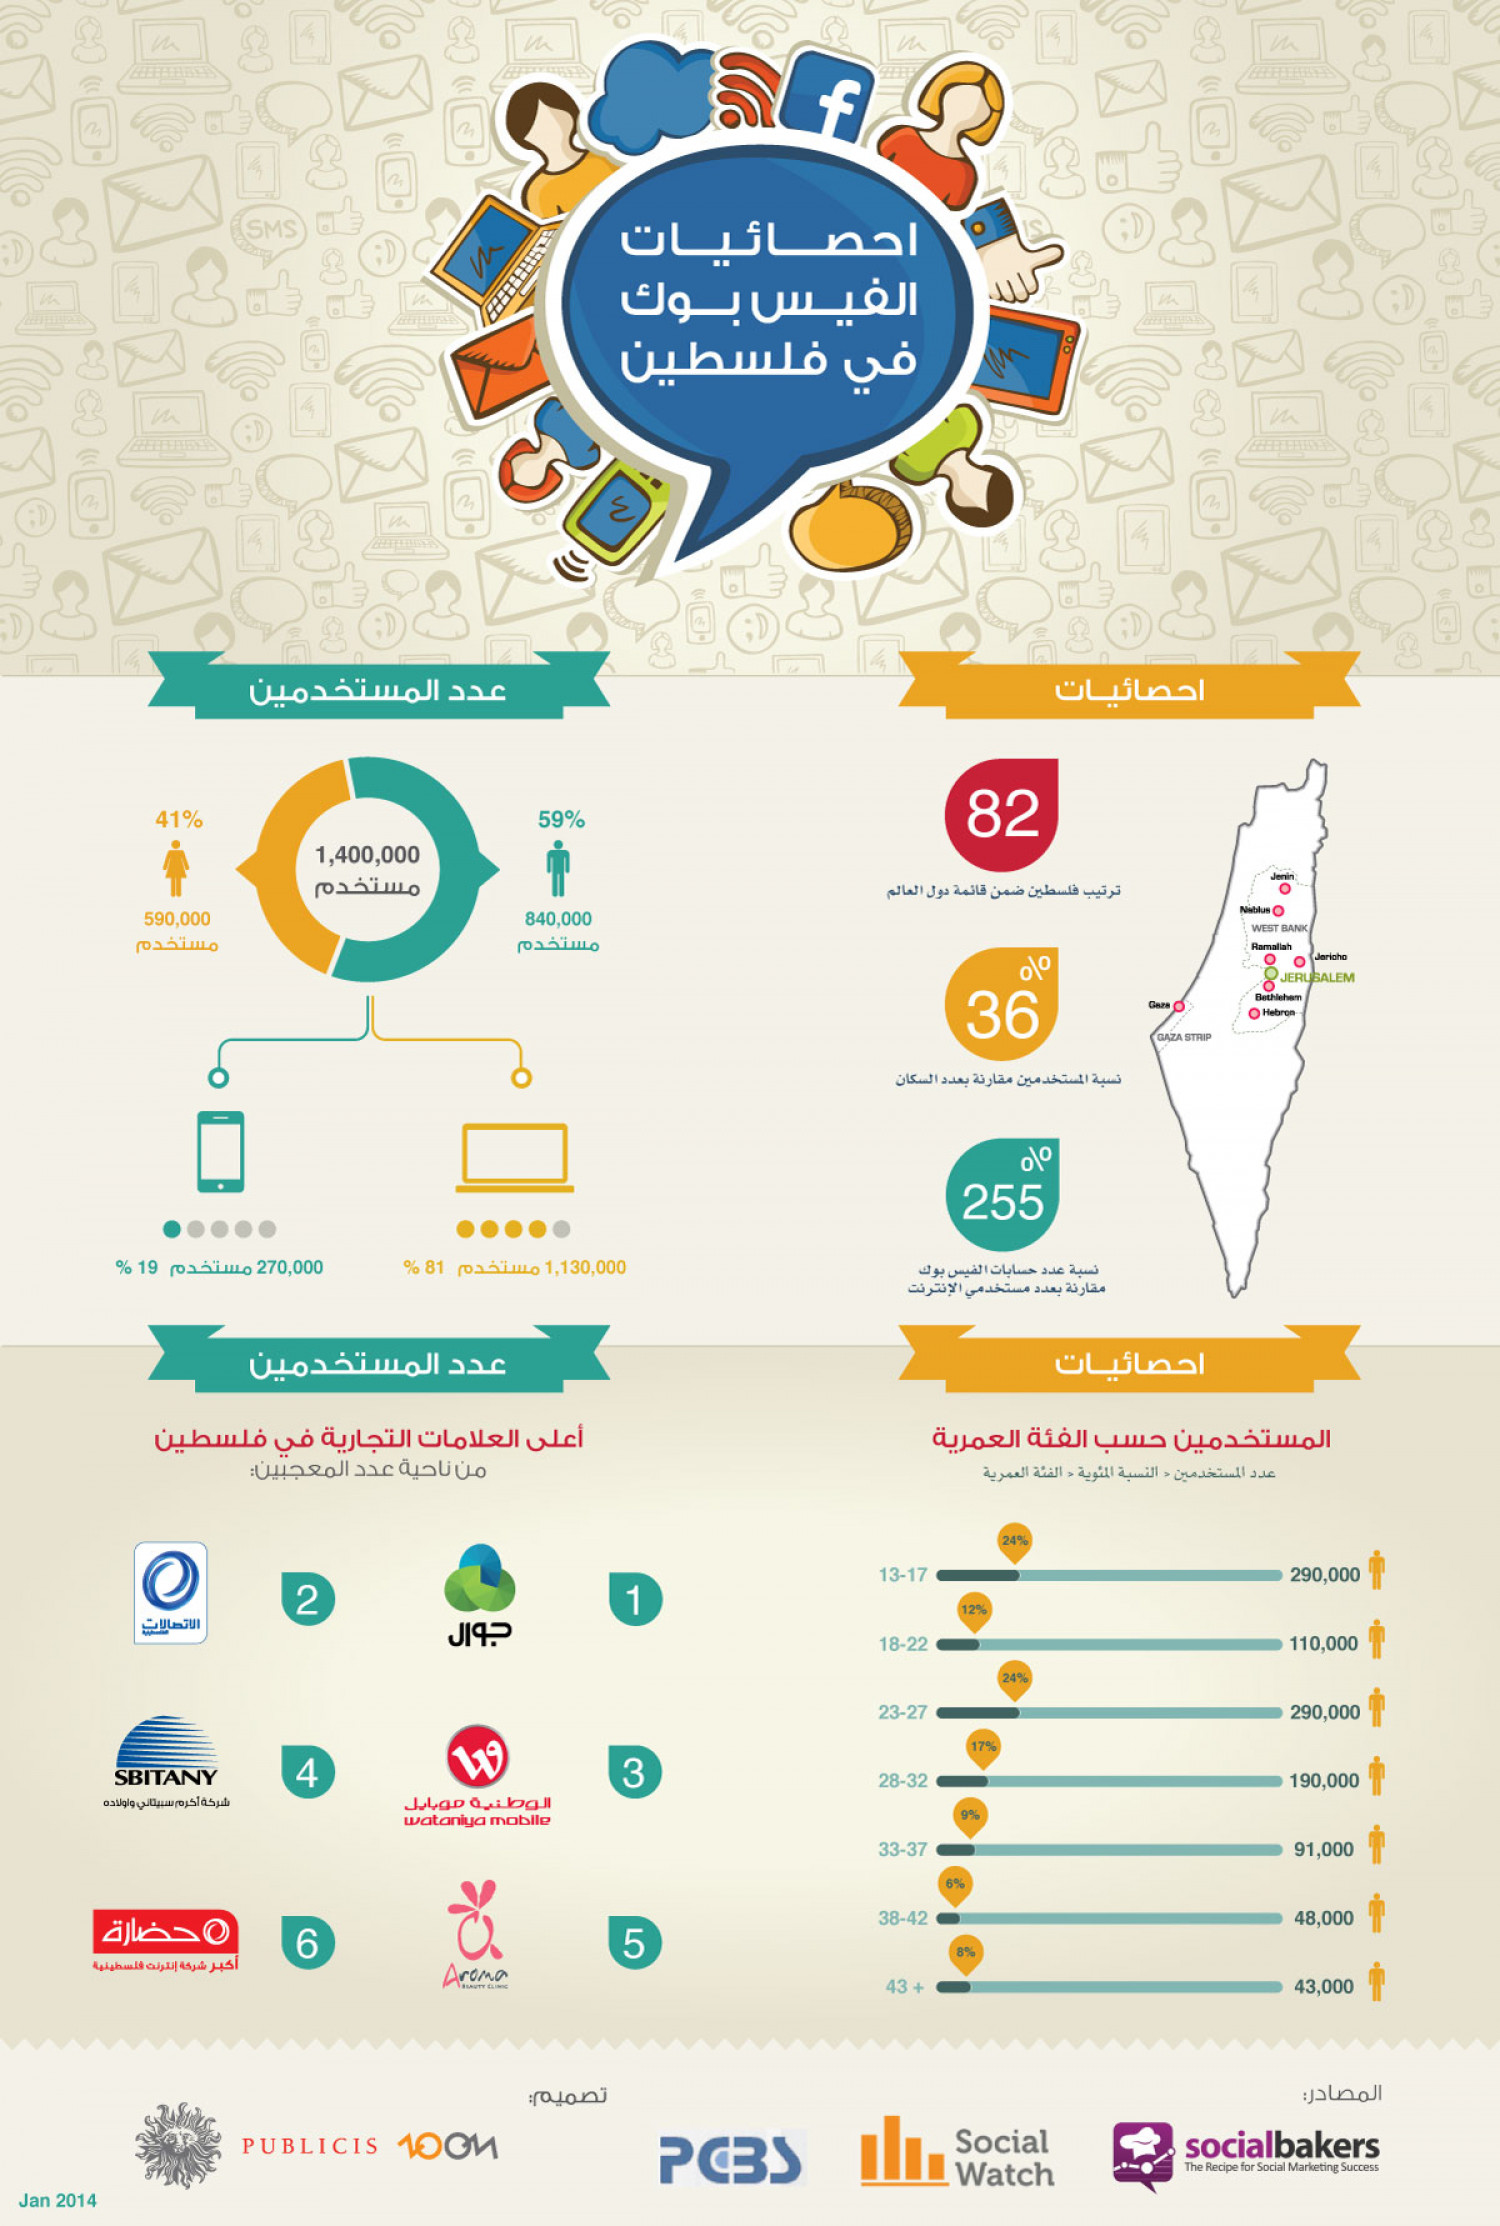 Palestine On Facebook - Jan 2014 (Arabic)  Infographic